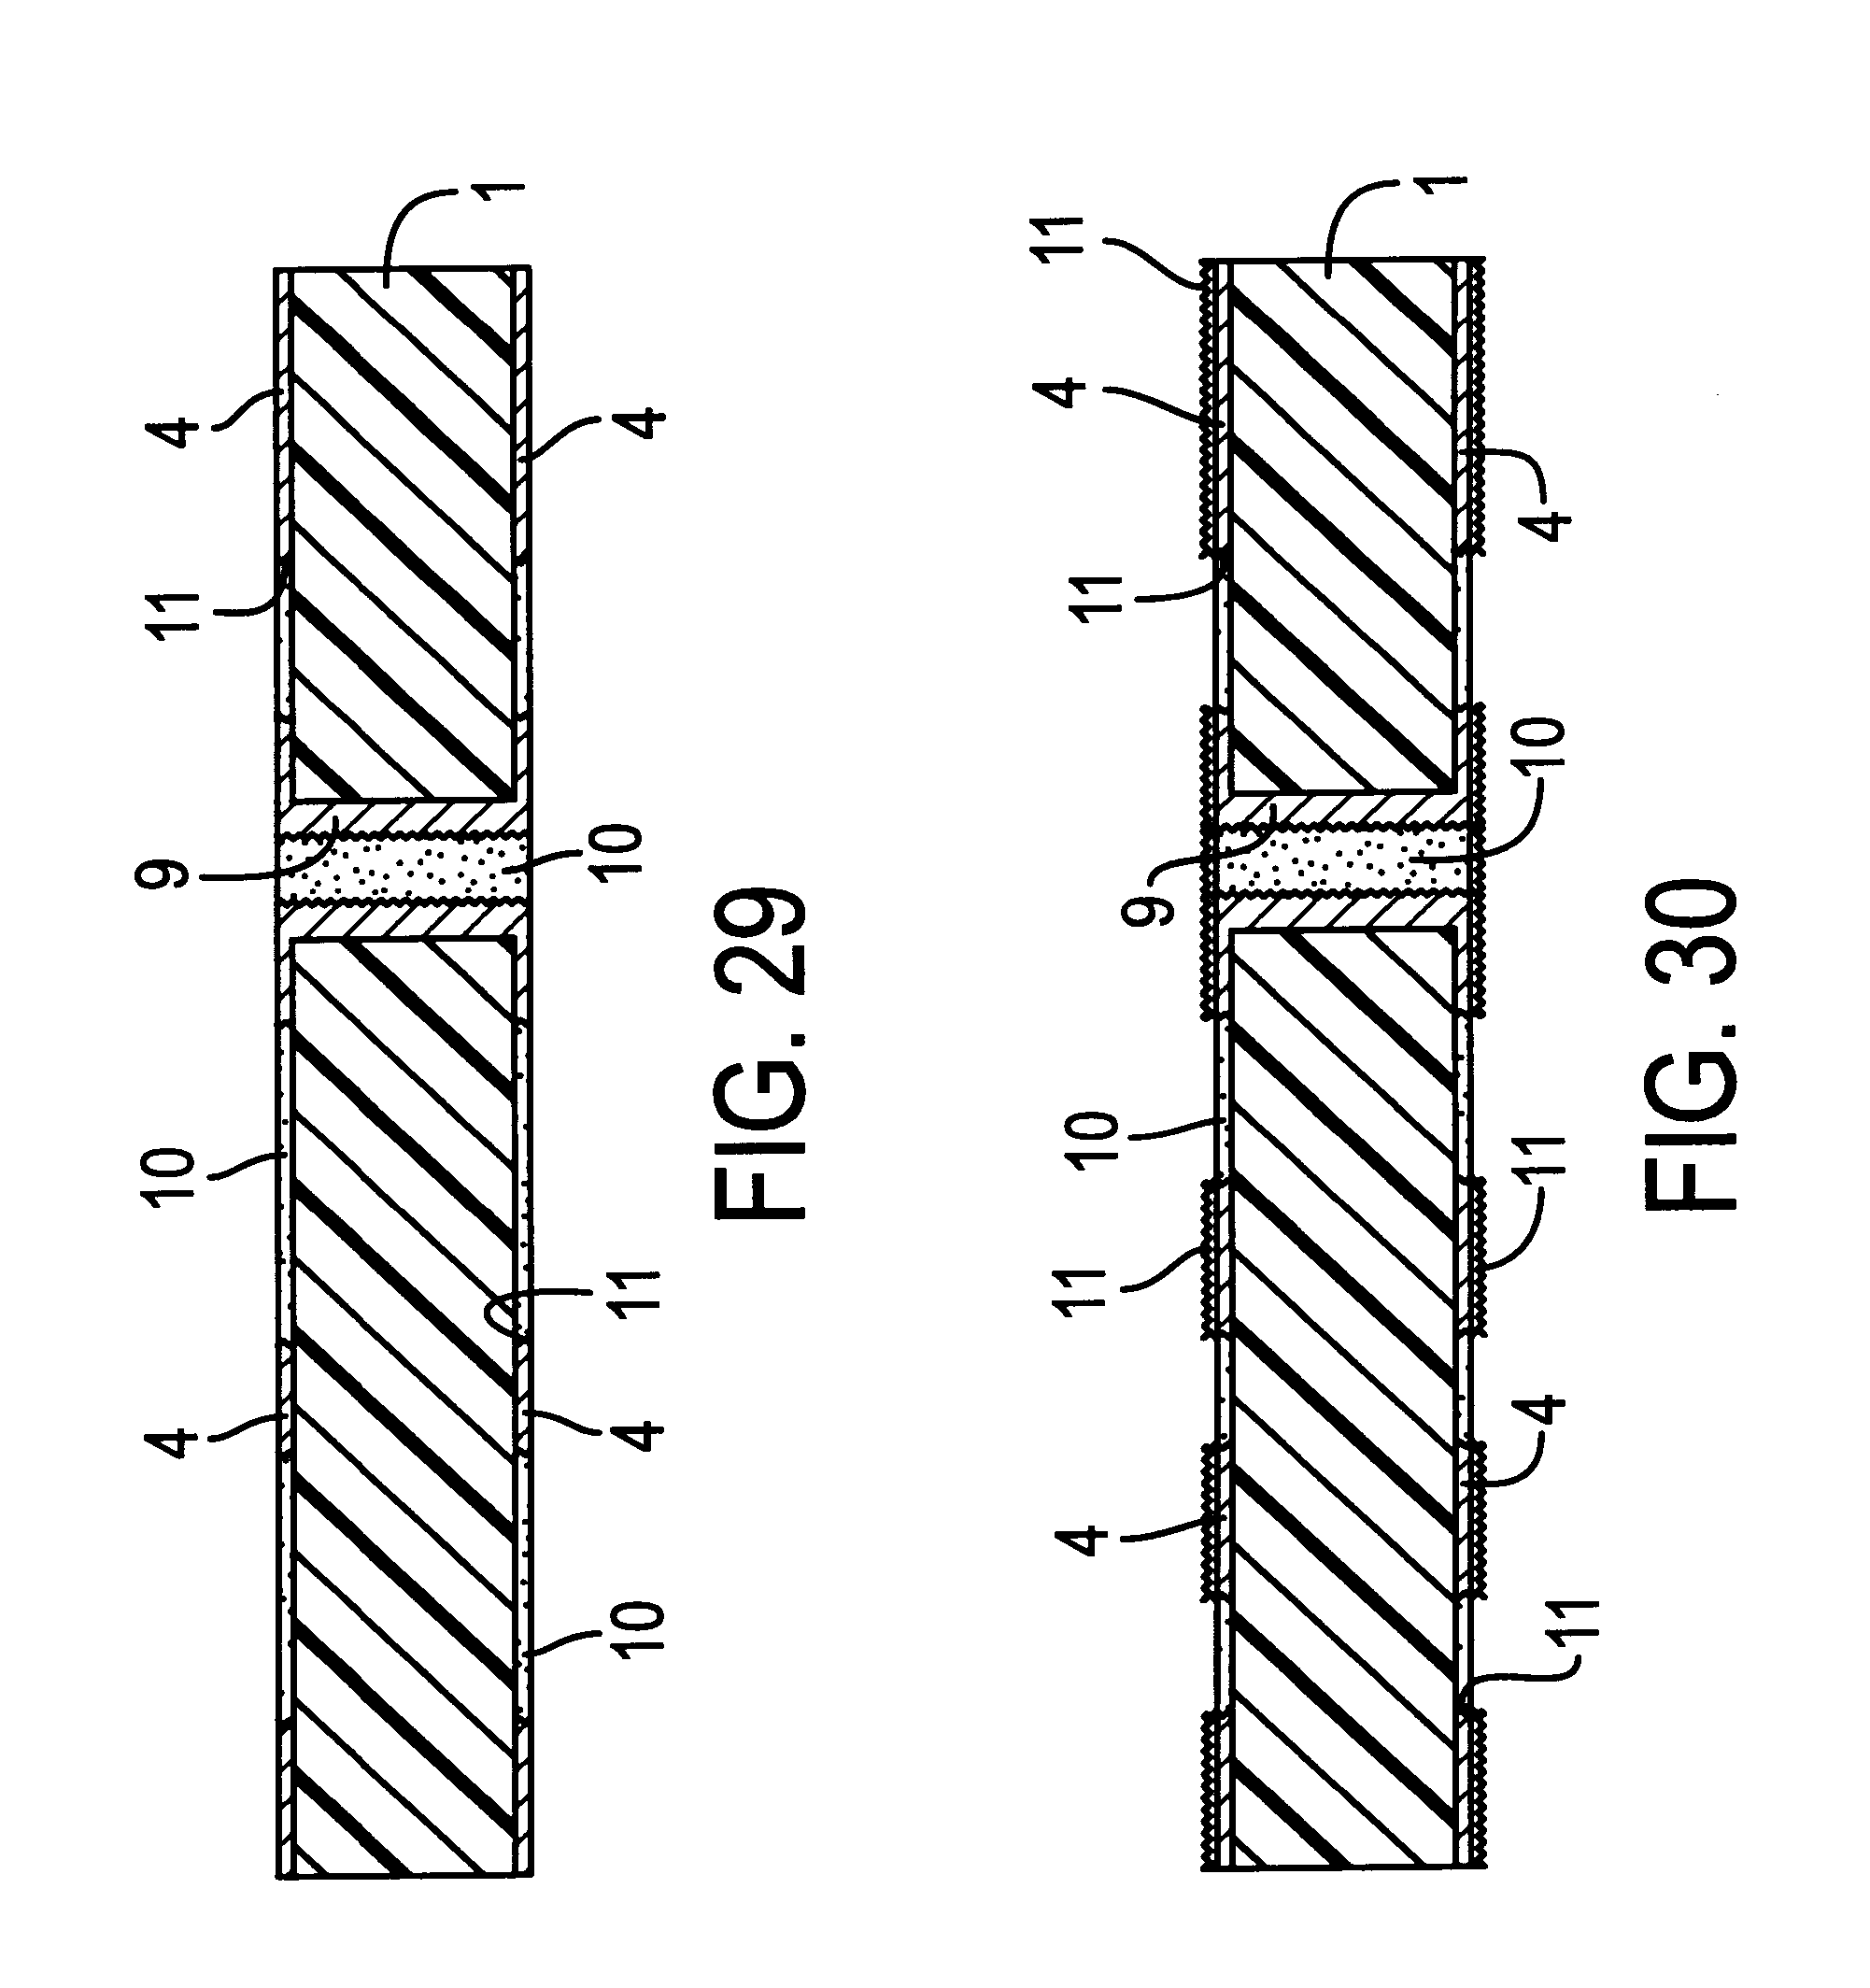 patent us6217987 - solder resist composition and printed circuit boards